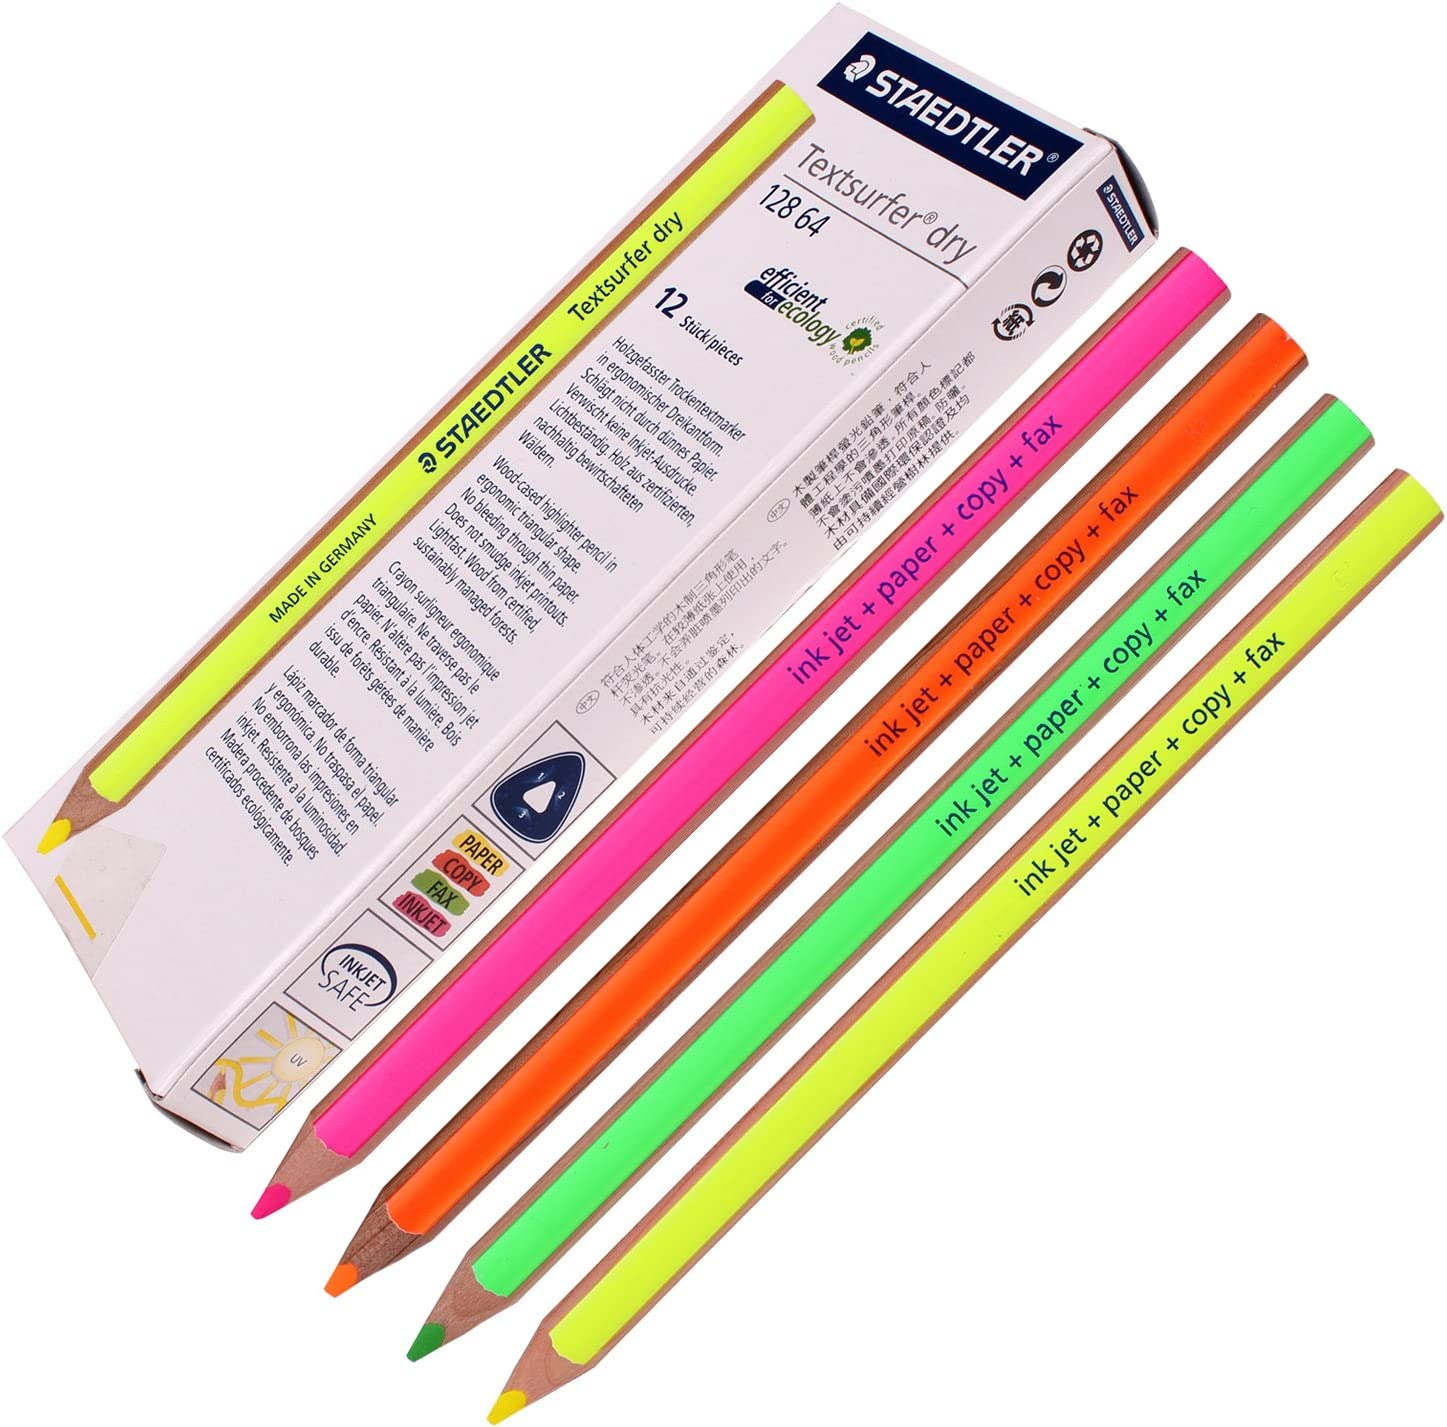 4pack Staedtler Textsurfer Dry Highlighter Pencil 128 64 Drawing Fluorcent 4mm